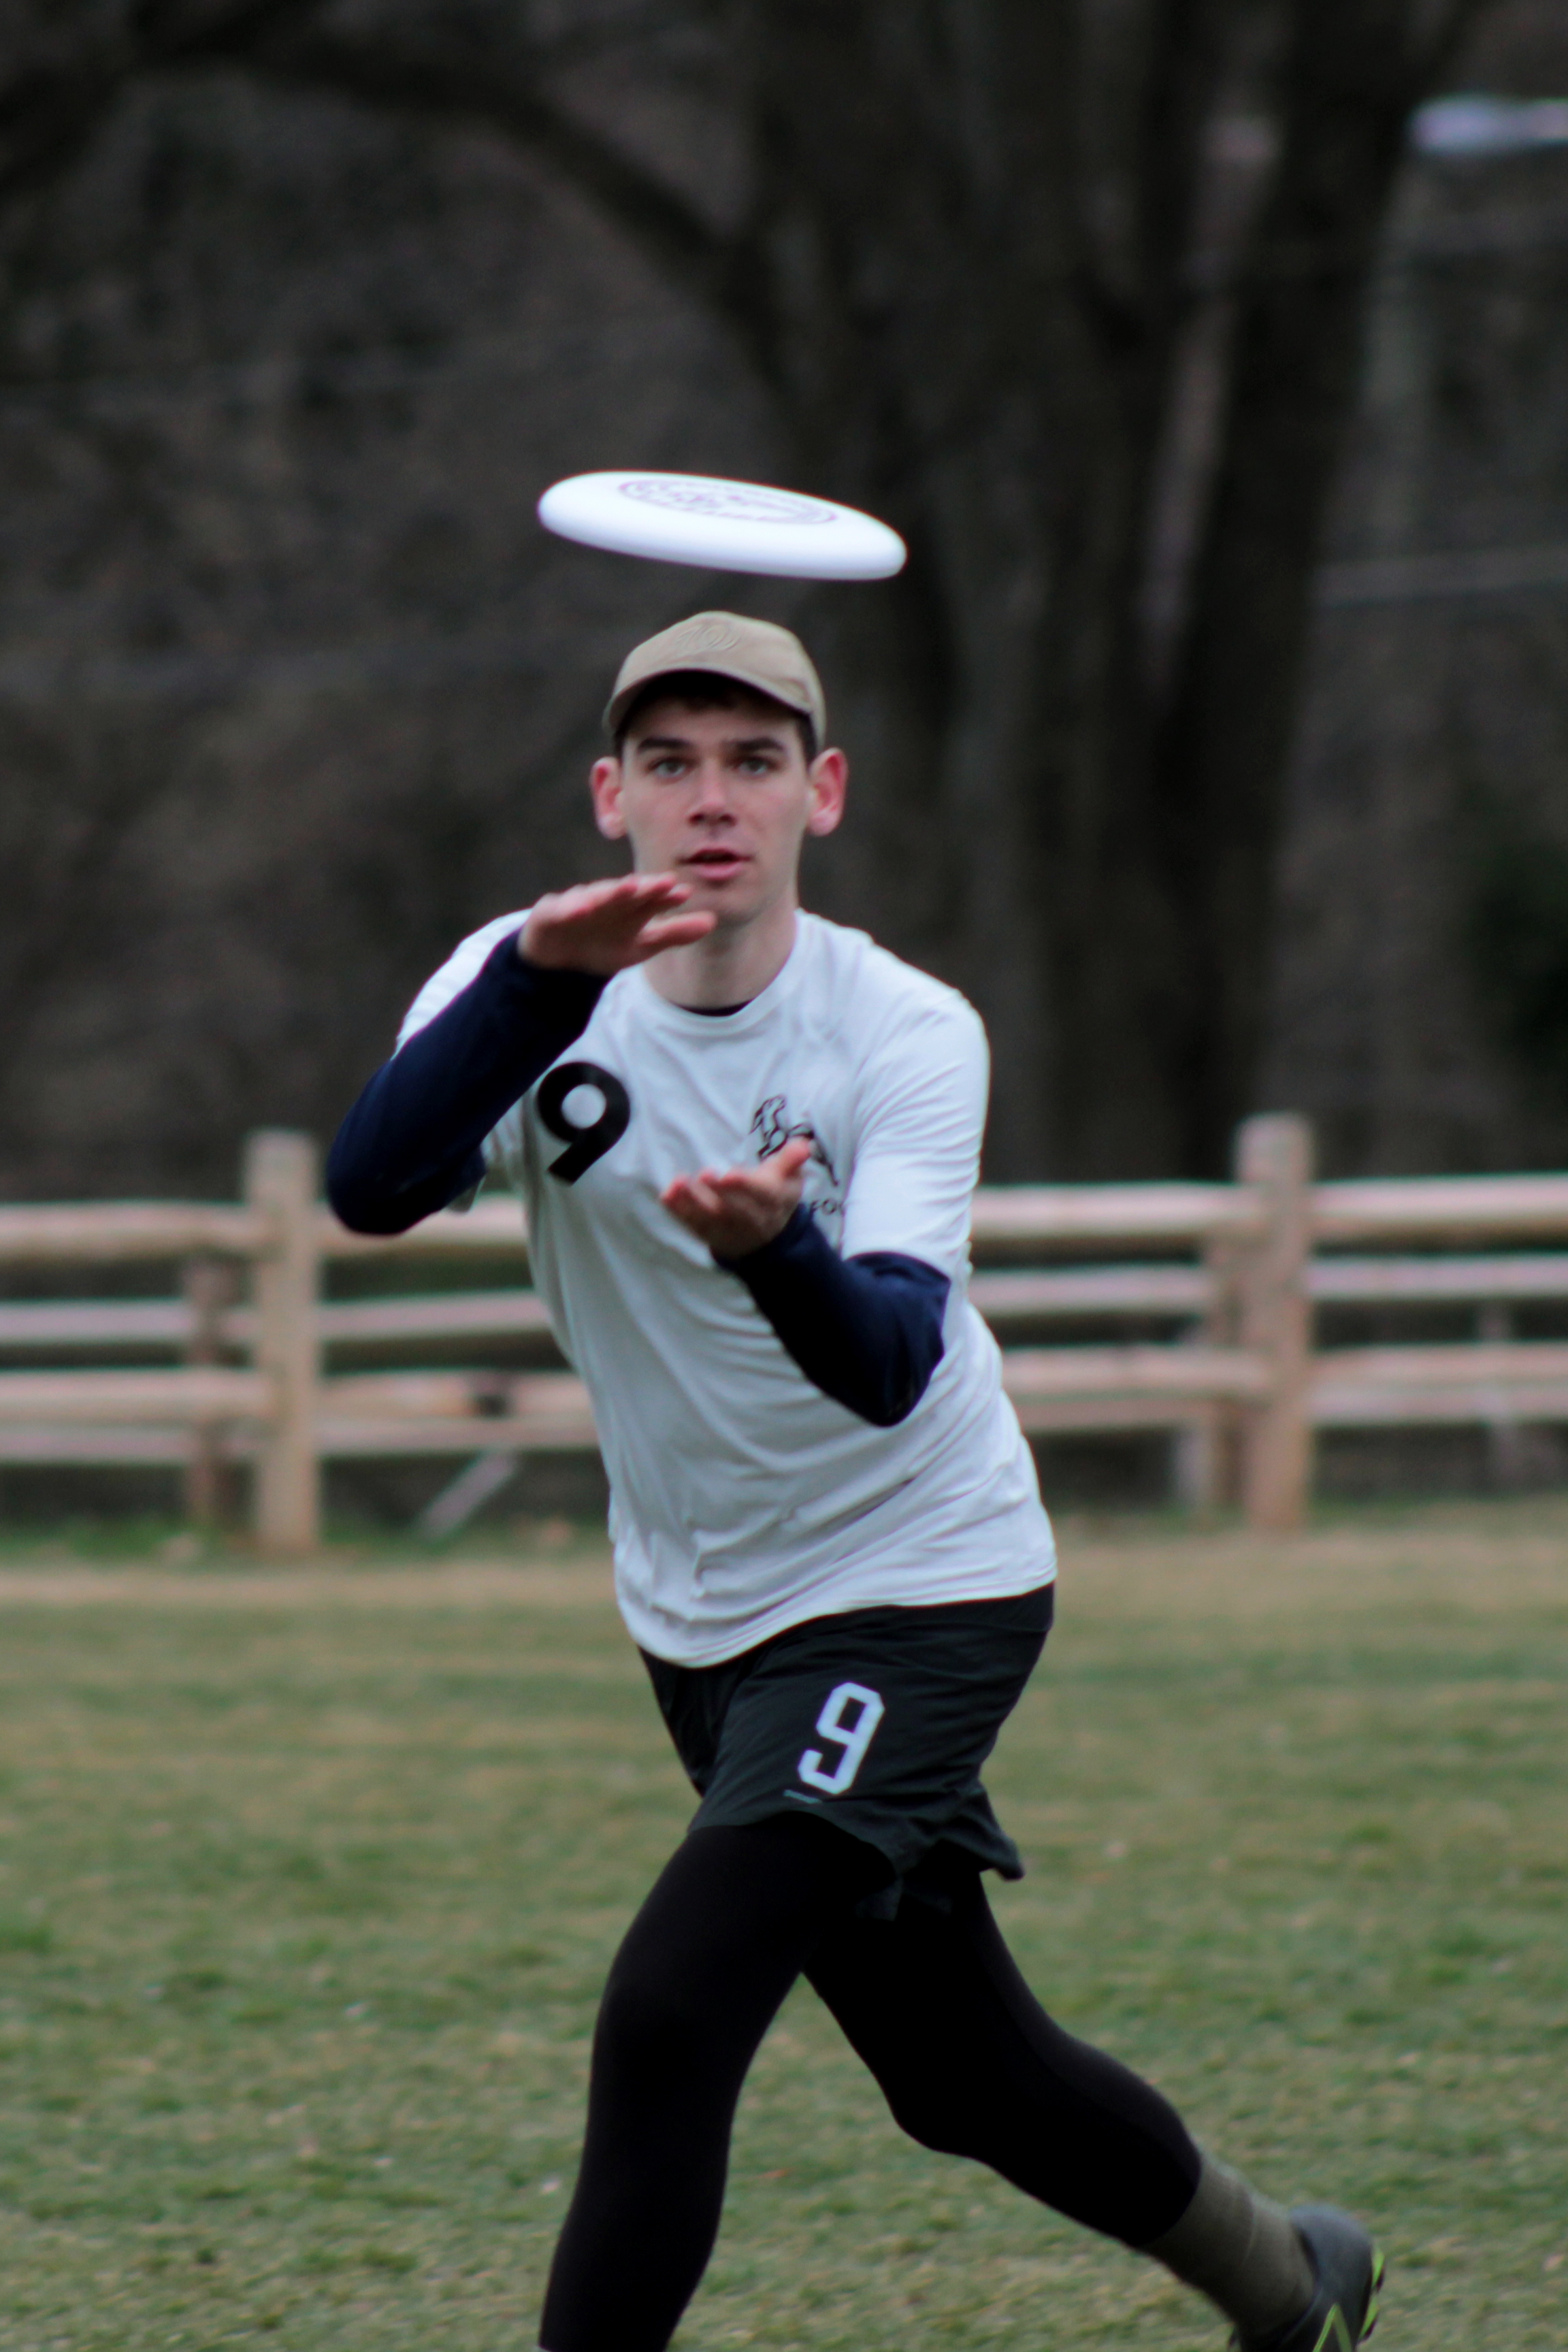 Steinberg runs for a disc